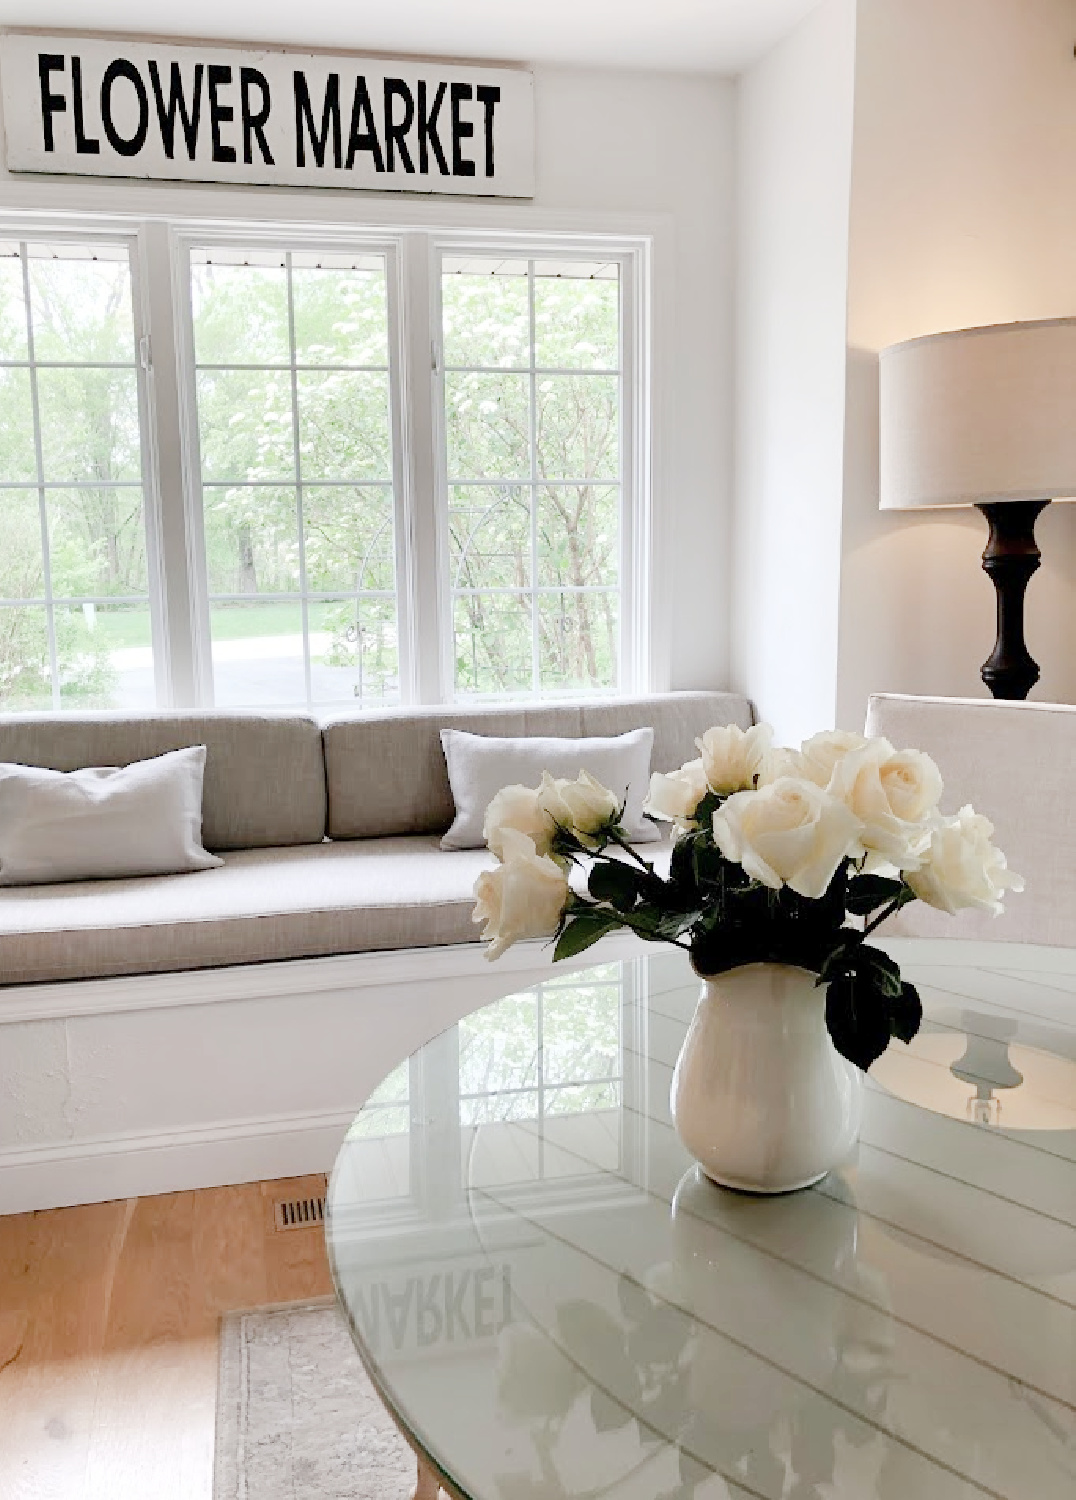 White roses in a vintage ironstone pitcher in my kitchen with window seat - Hello Lovely. #whiteroses #whitedecor #windowseat #breakfastnook